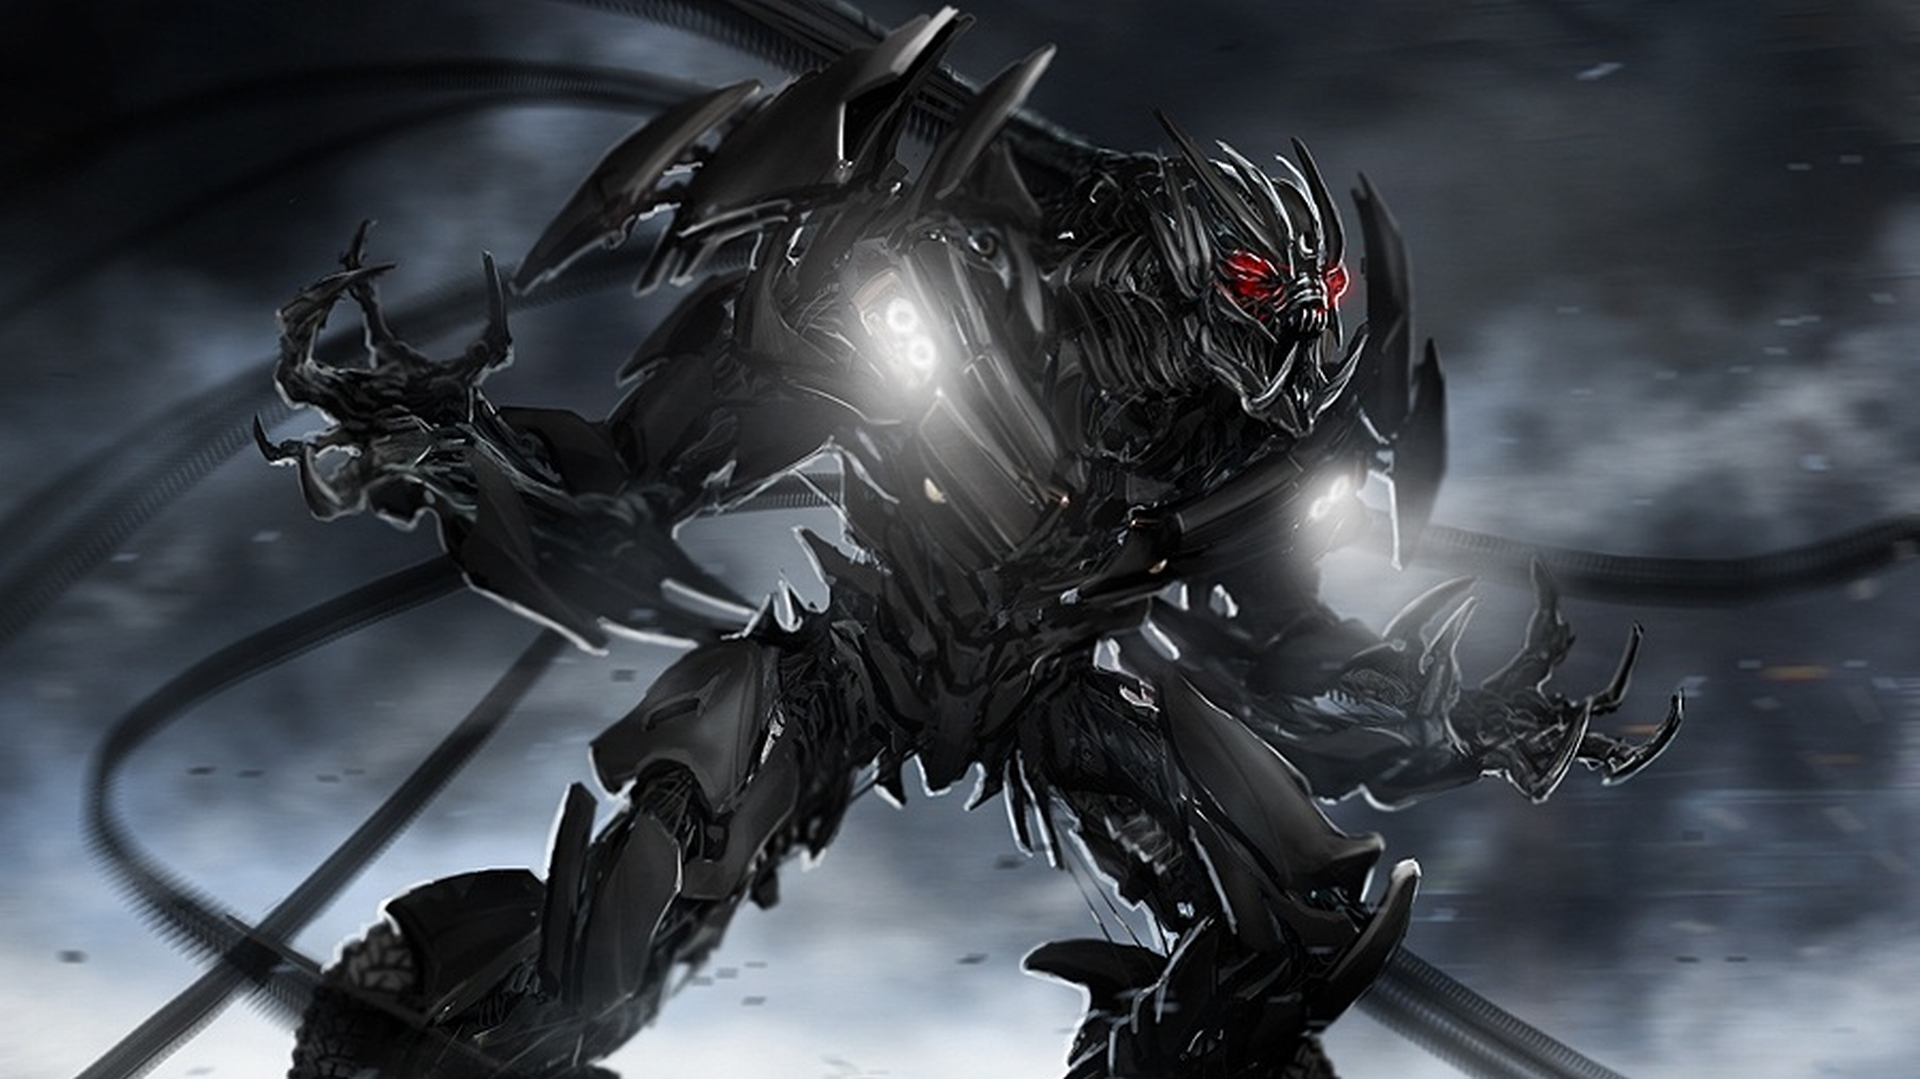 Transformers Movie wallpapers Crazy Frankenstein